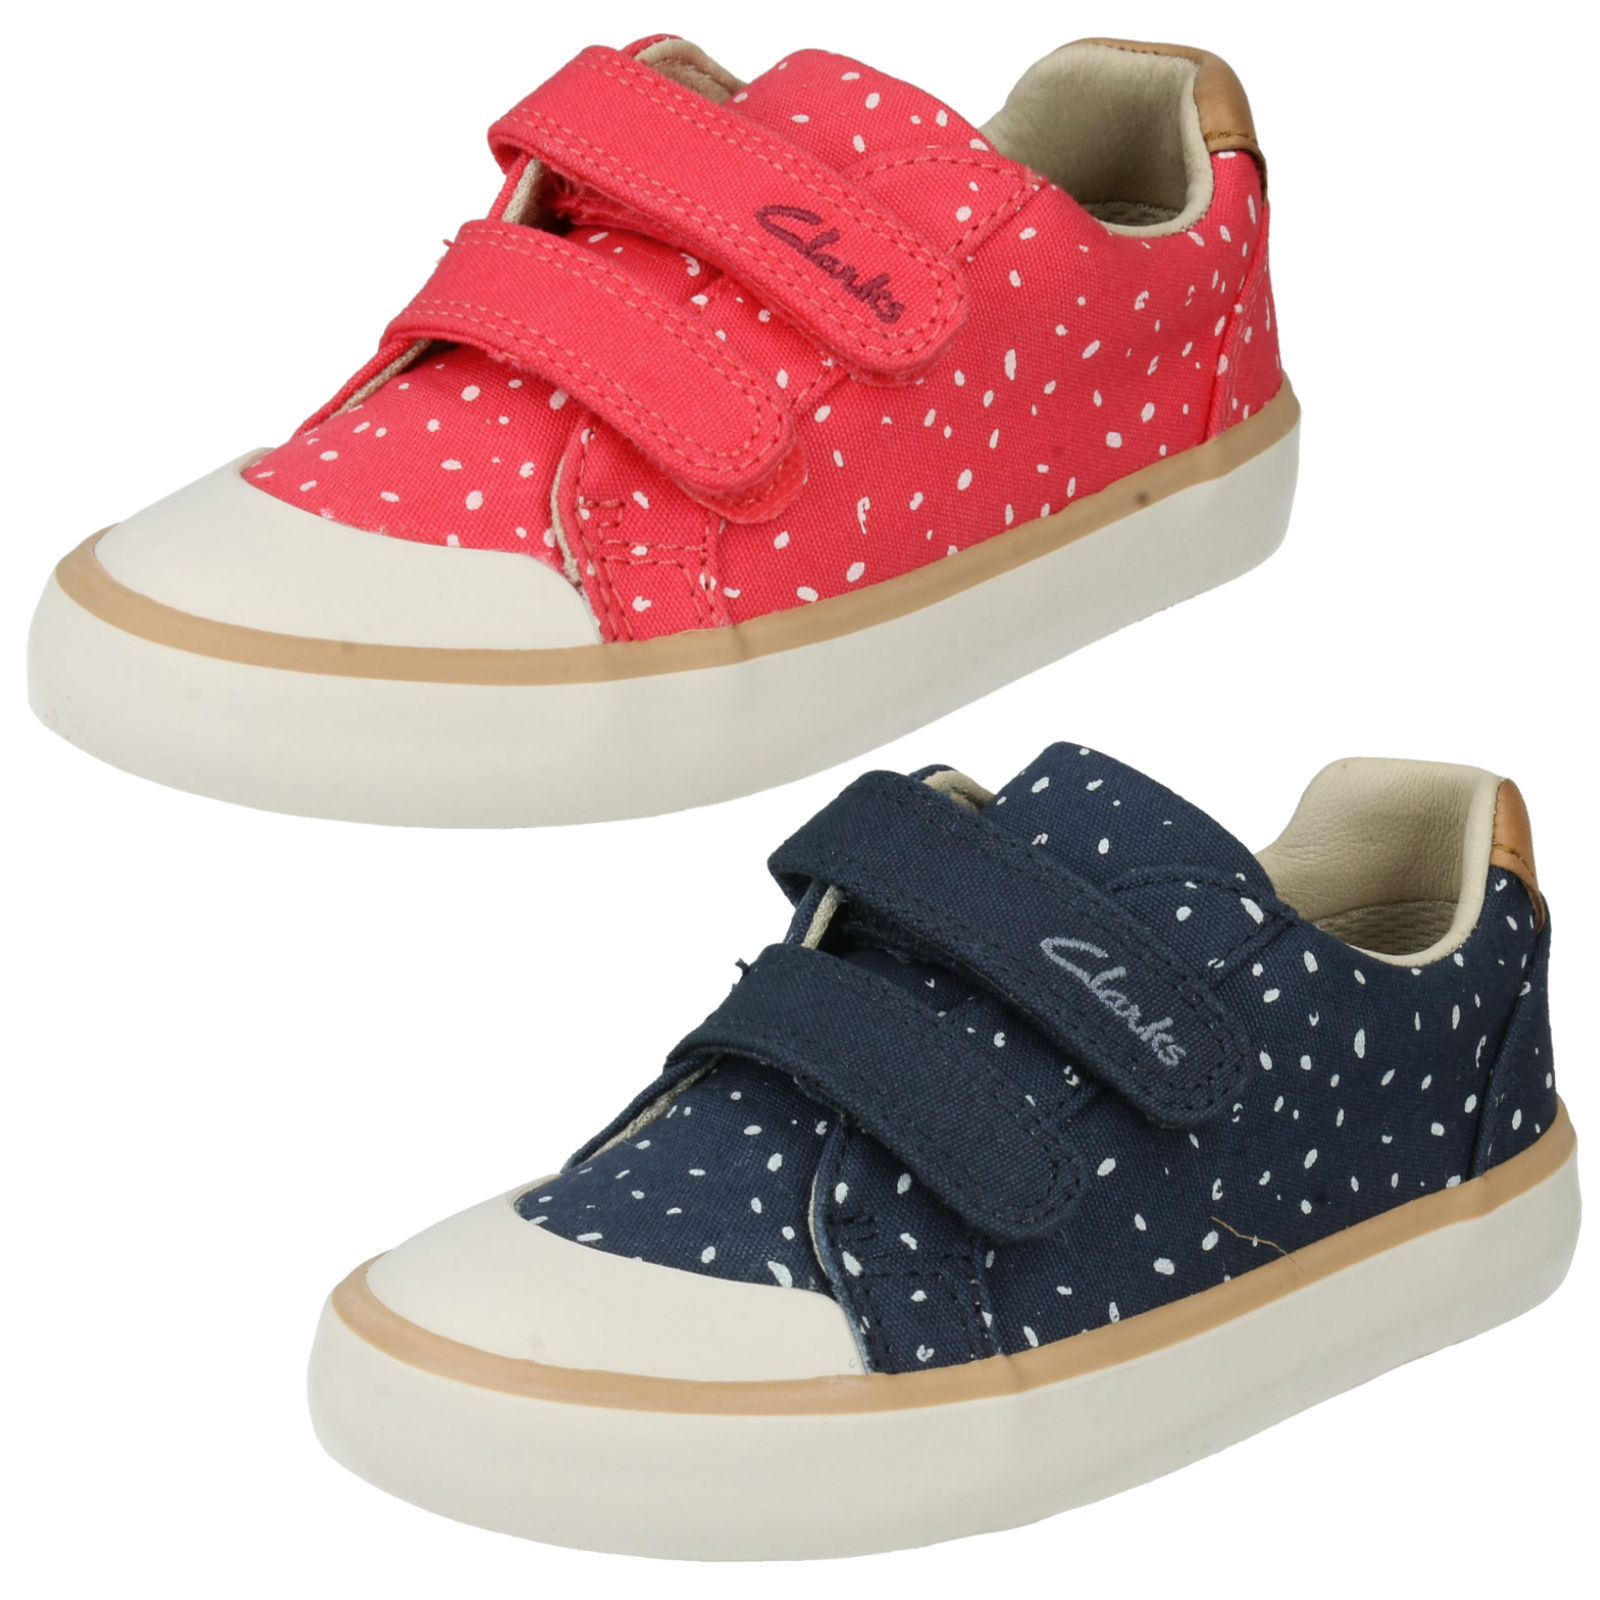 Girls Clarks Canvas Shoes Comic Cool